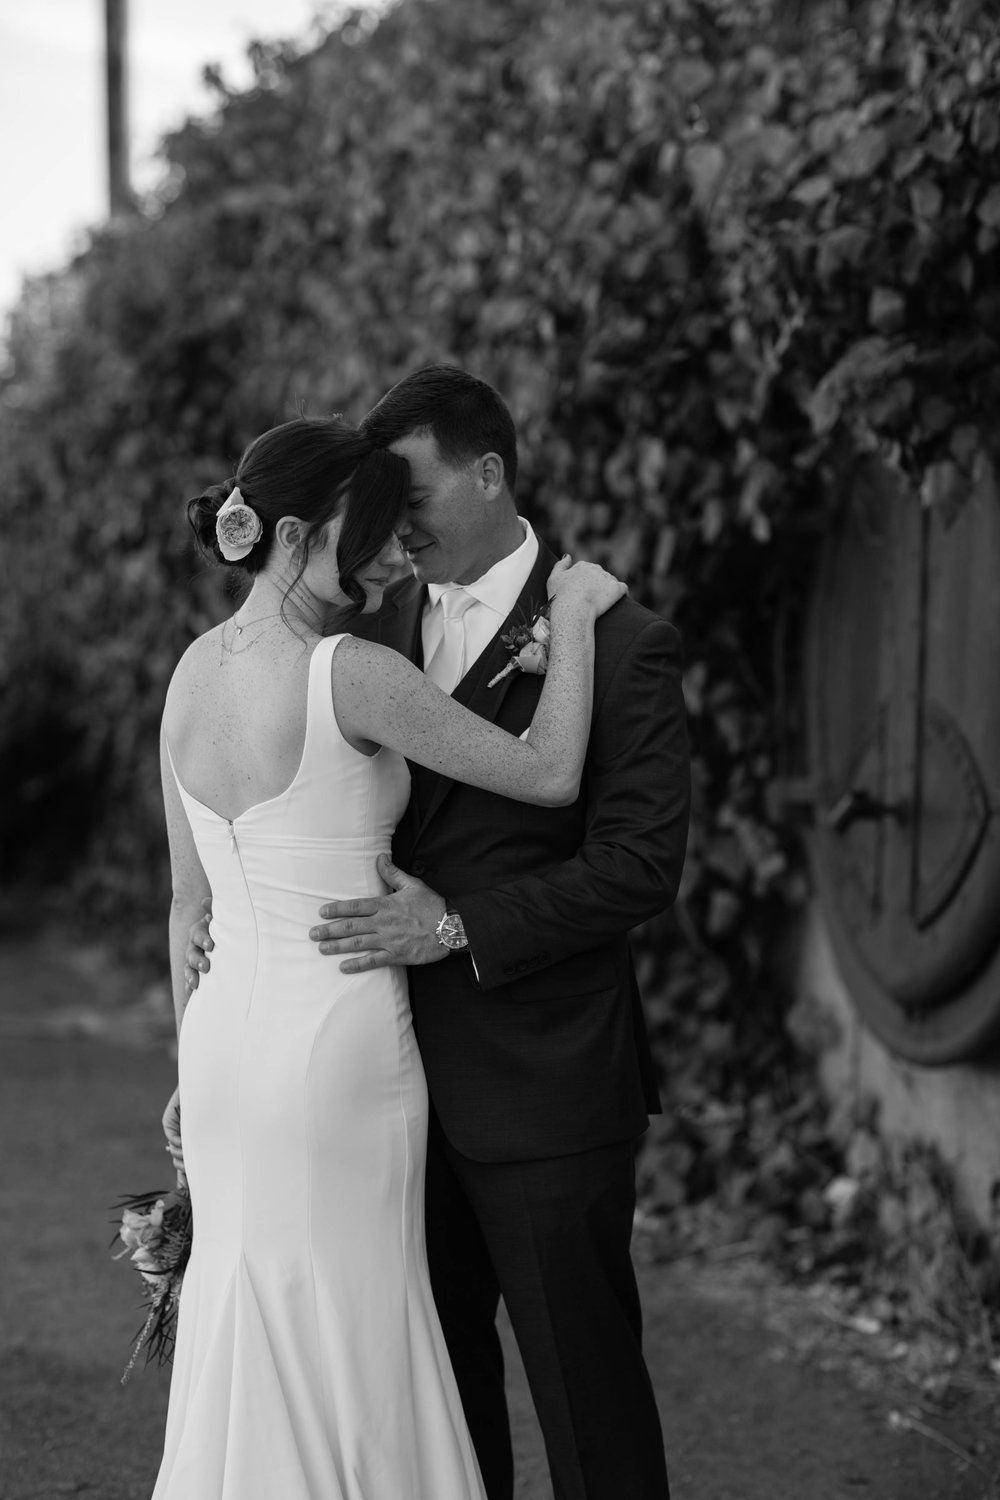 benicia_backyard_wedding_photographer_will_sneak_peek (7 of 12).jpg